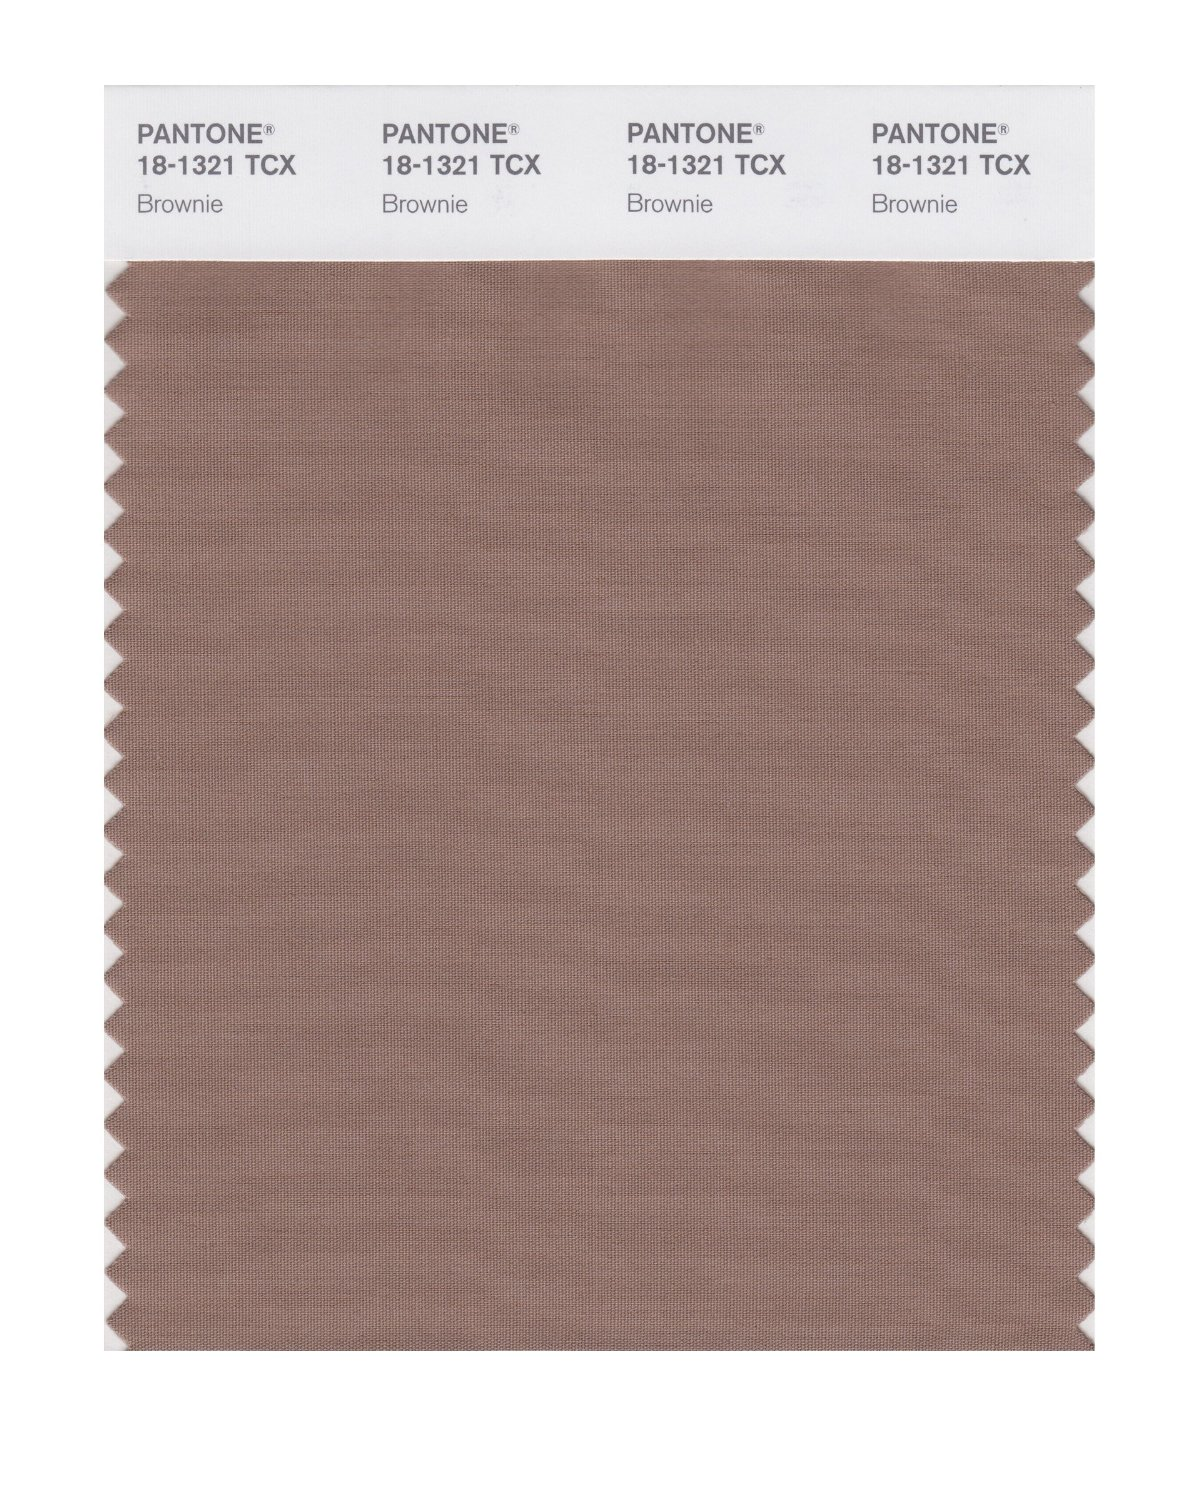 Pantone Smart Swatch 18-1321 Brownie